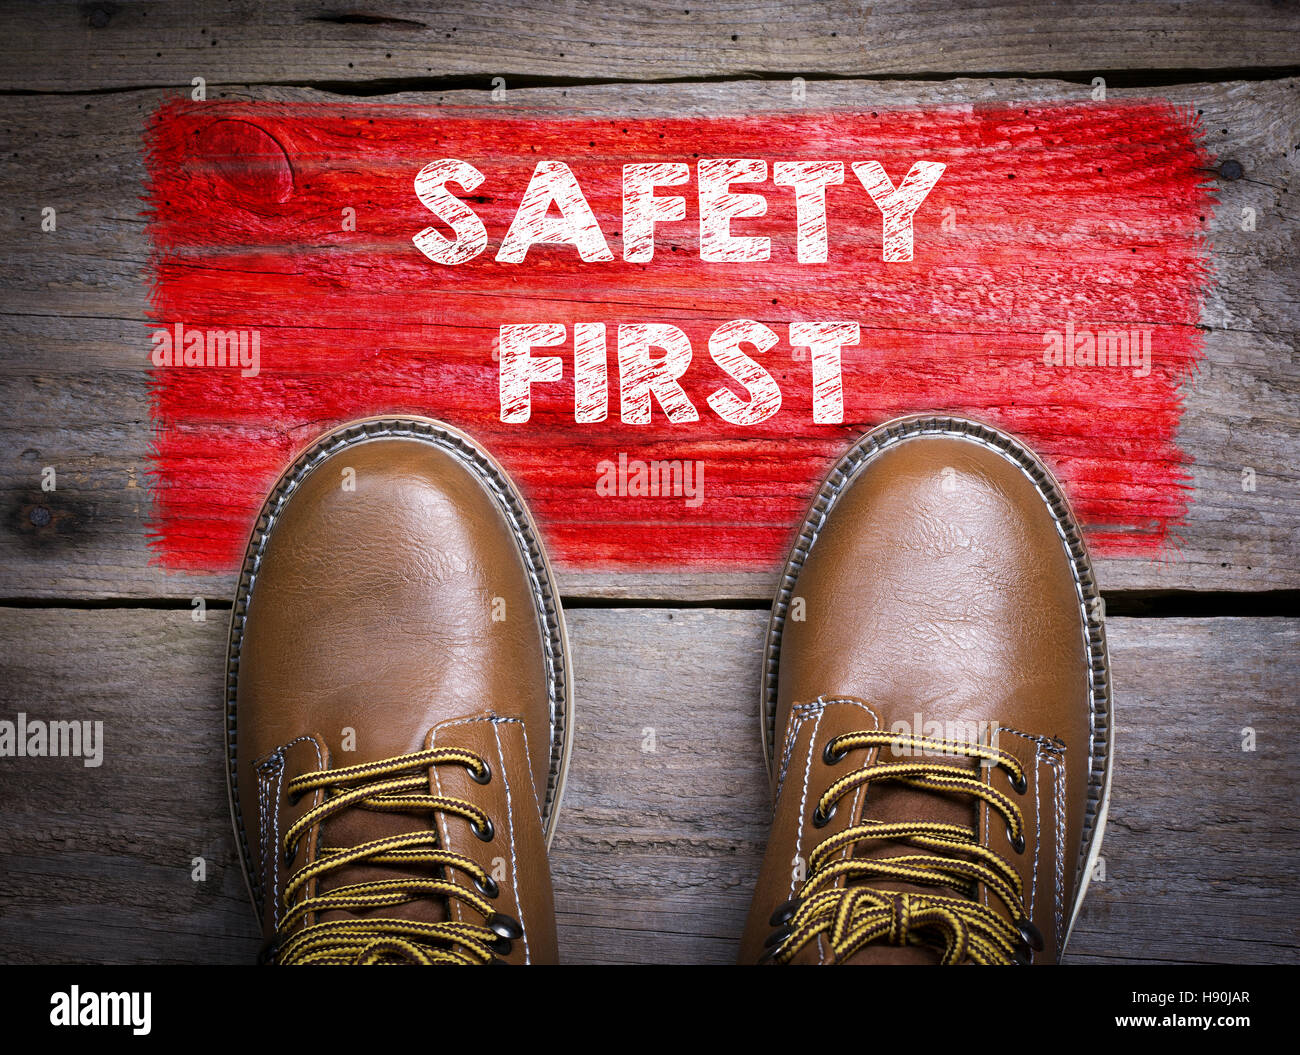 Safety First. Top View of Boot on wooden background - Stock Image